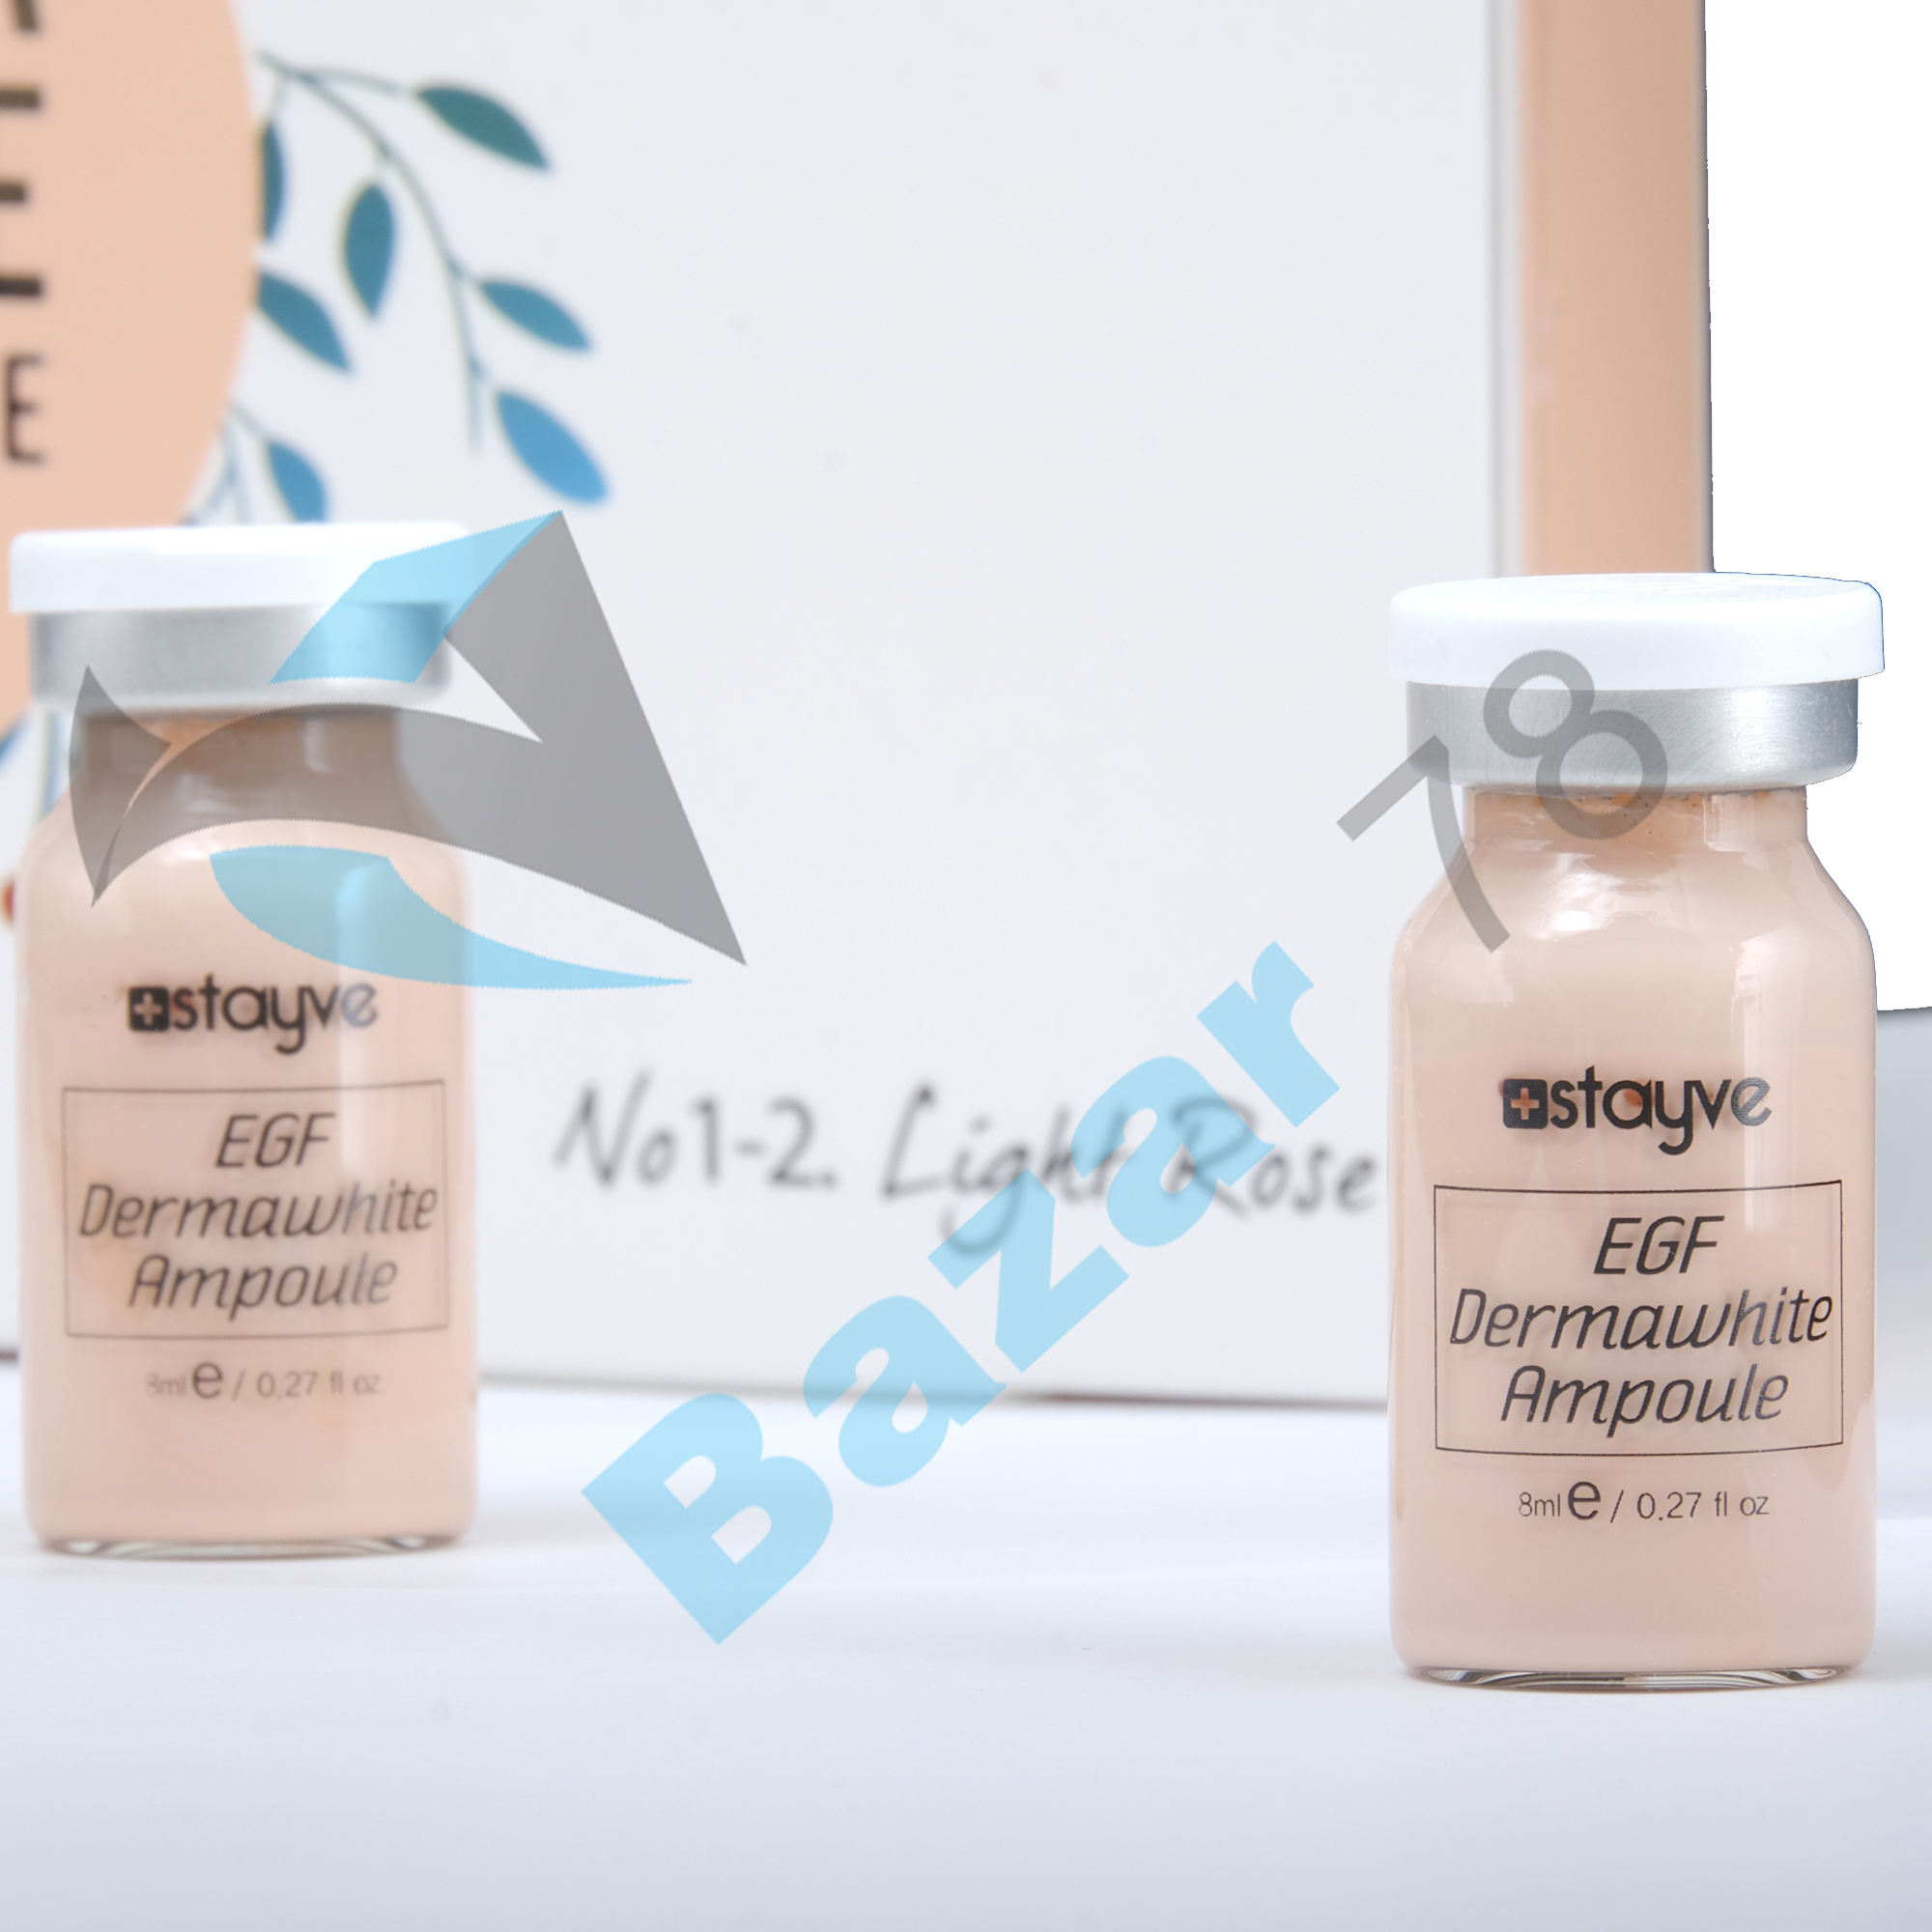 BB сыворотка STAYVE Dermawhite 1-2 Light Rose